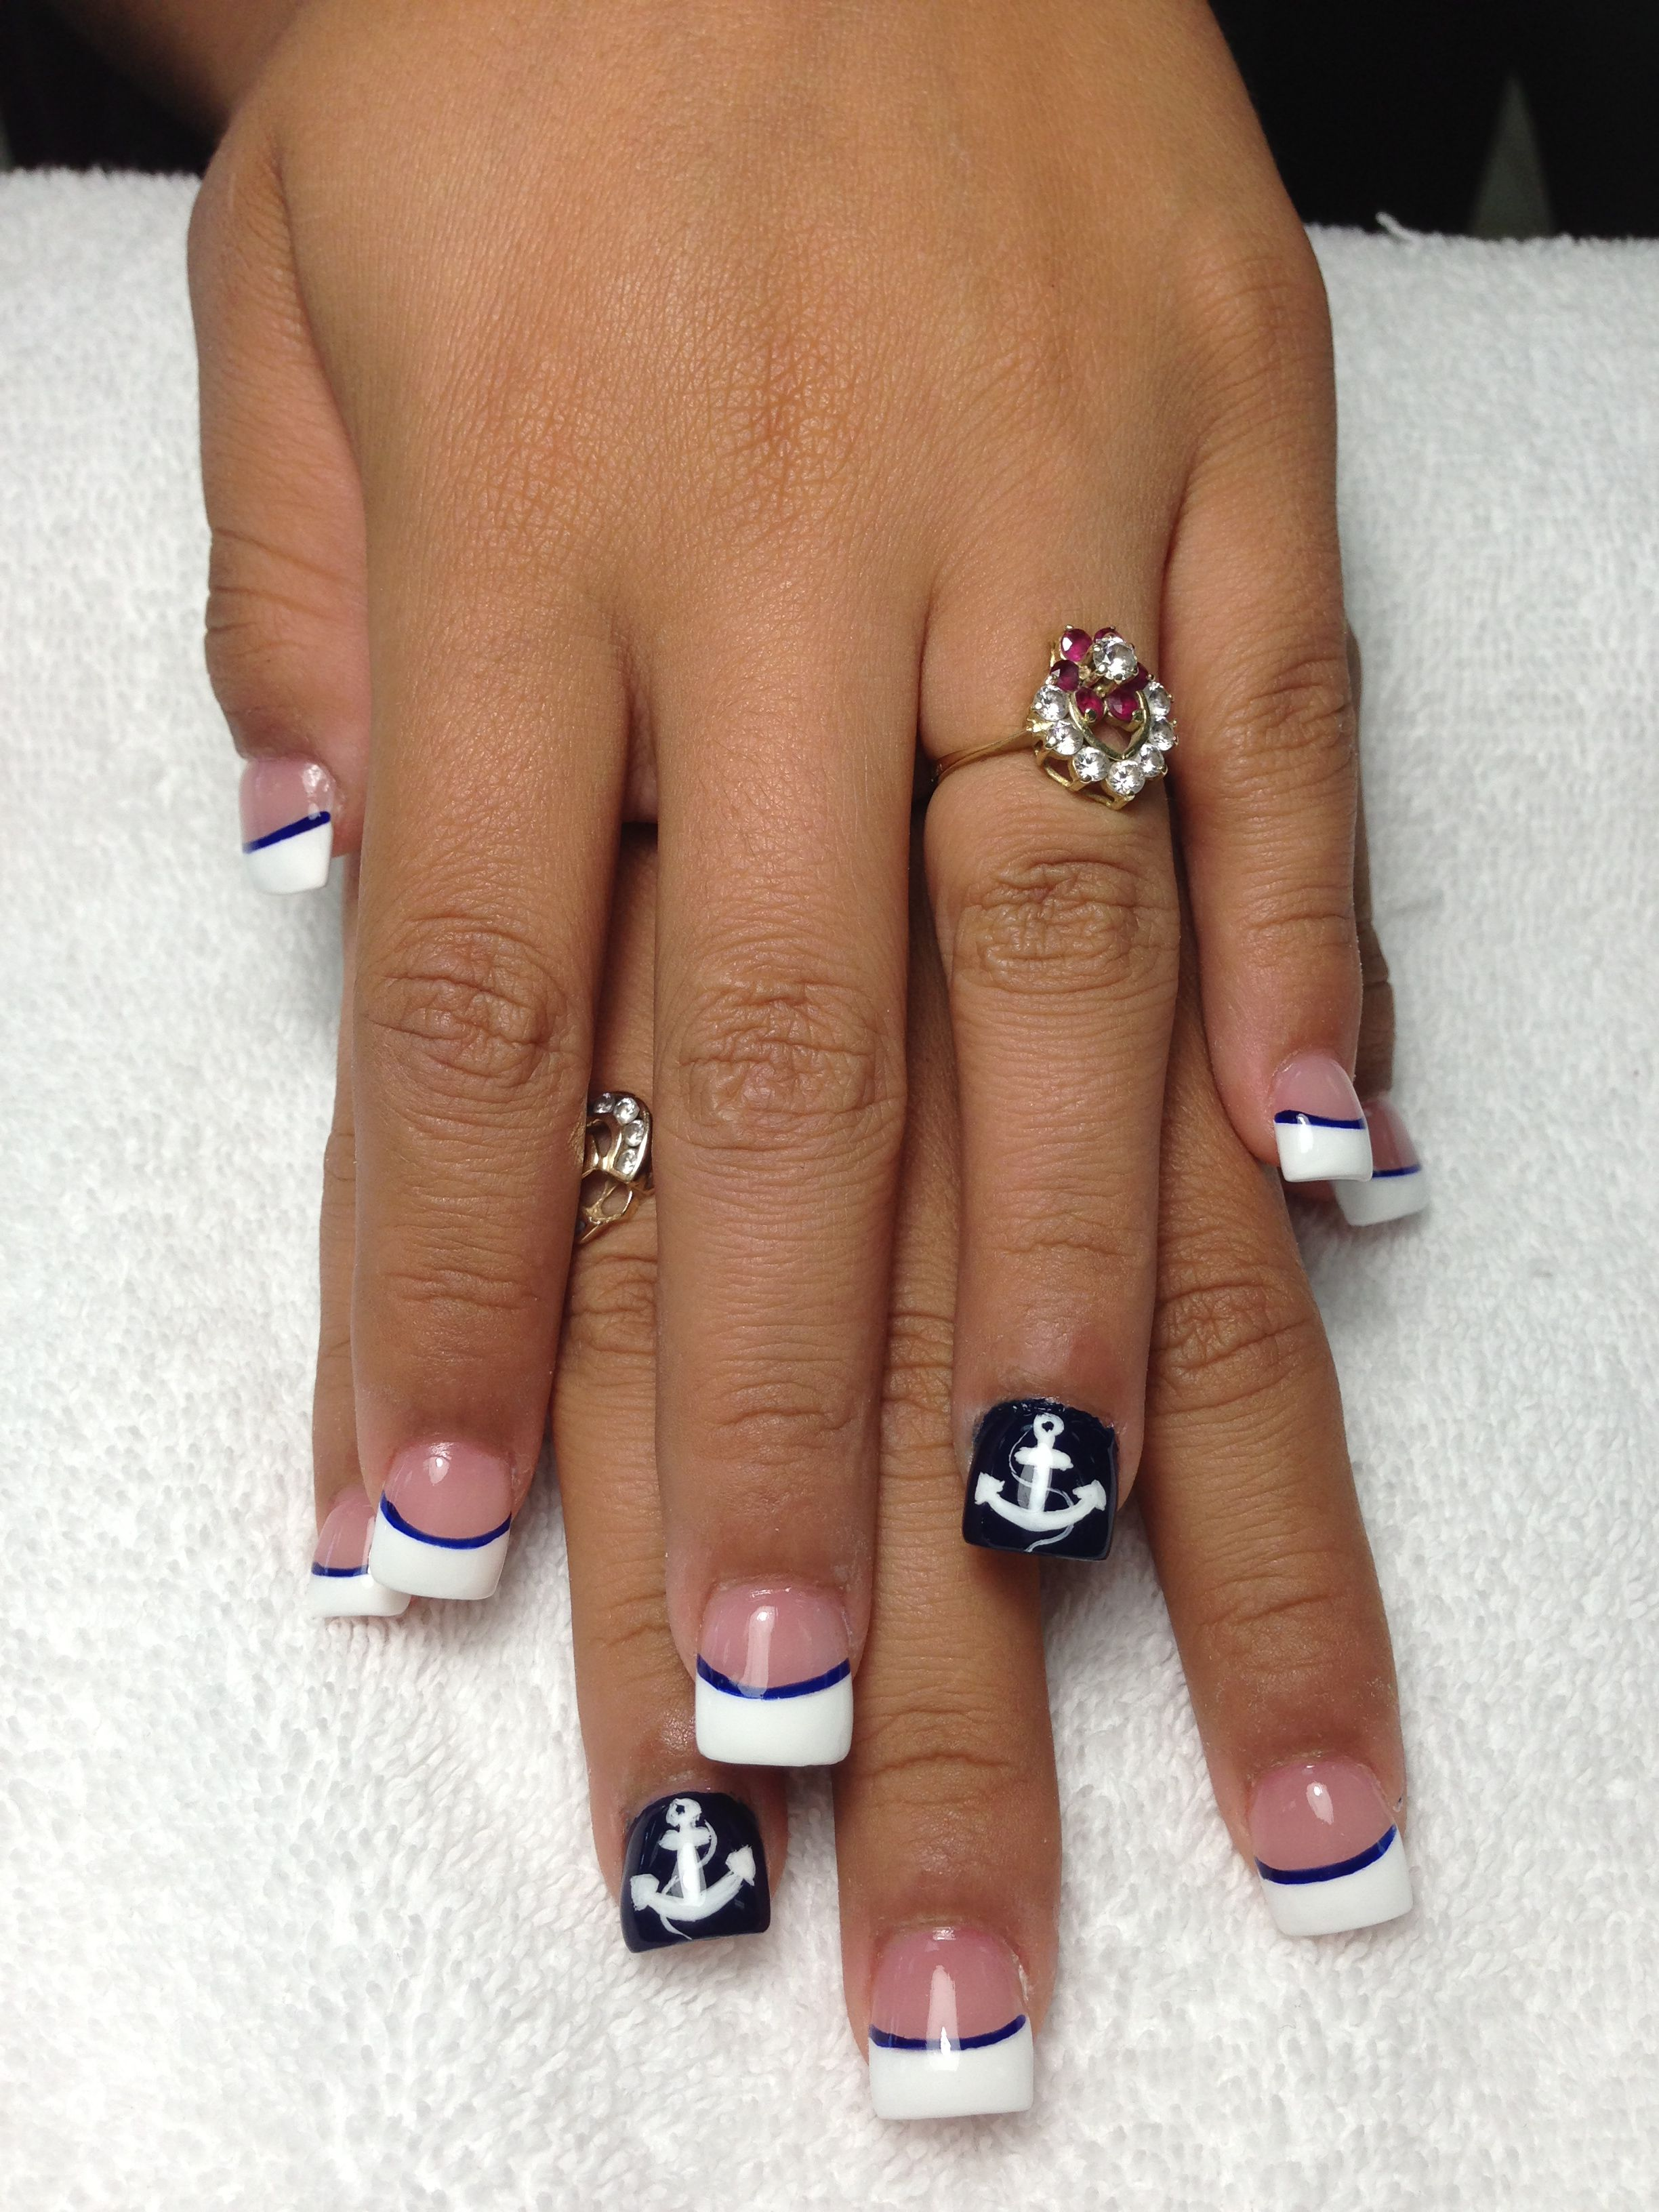 Simple French with a line to separate the tips and show off the ring ...